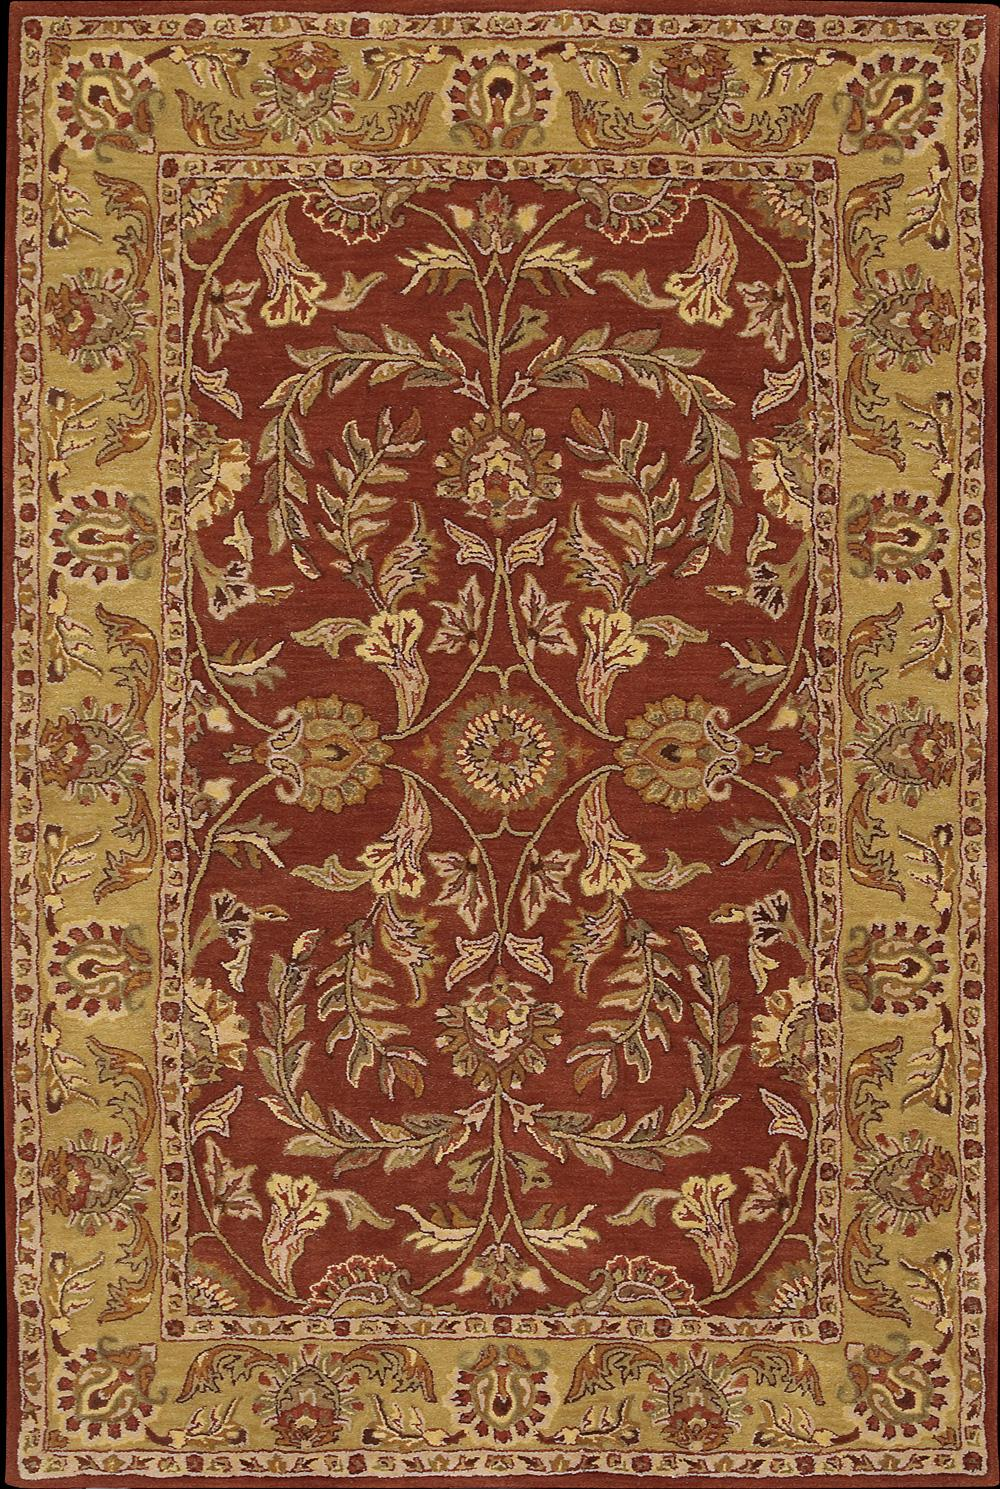 Nourison India House Area Rug 5' x 8' - Item Number: 80349